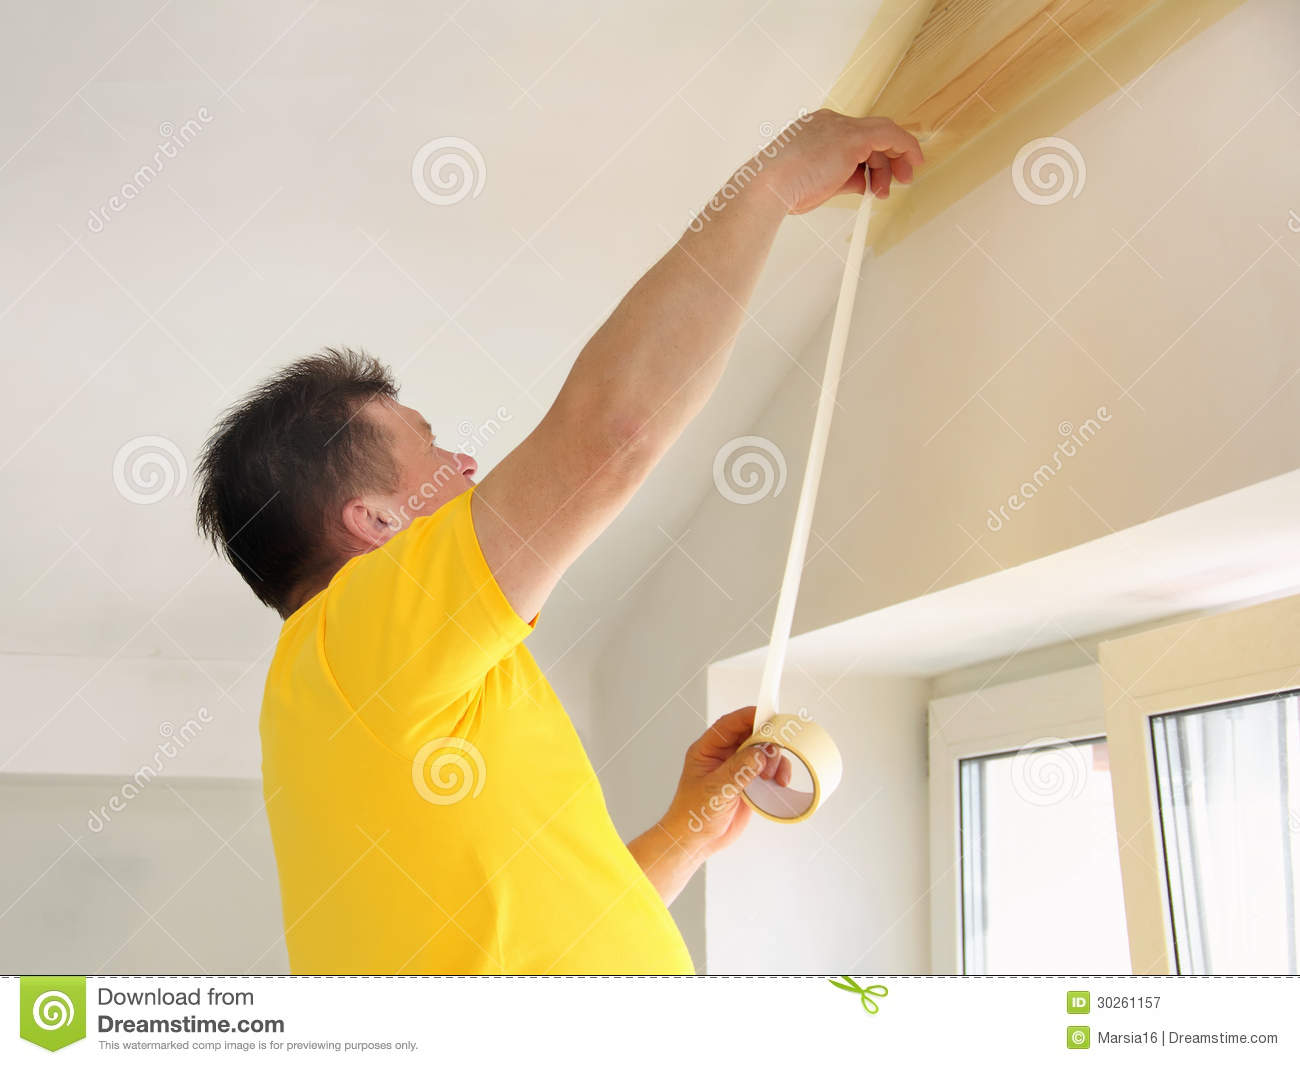 ... to the edges of the wooden ceiling beam, which he is going to paint